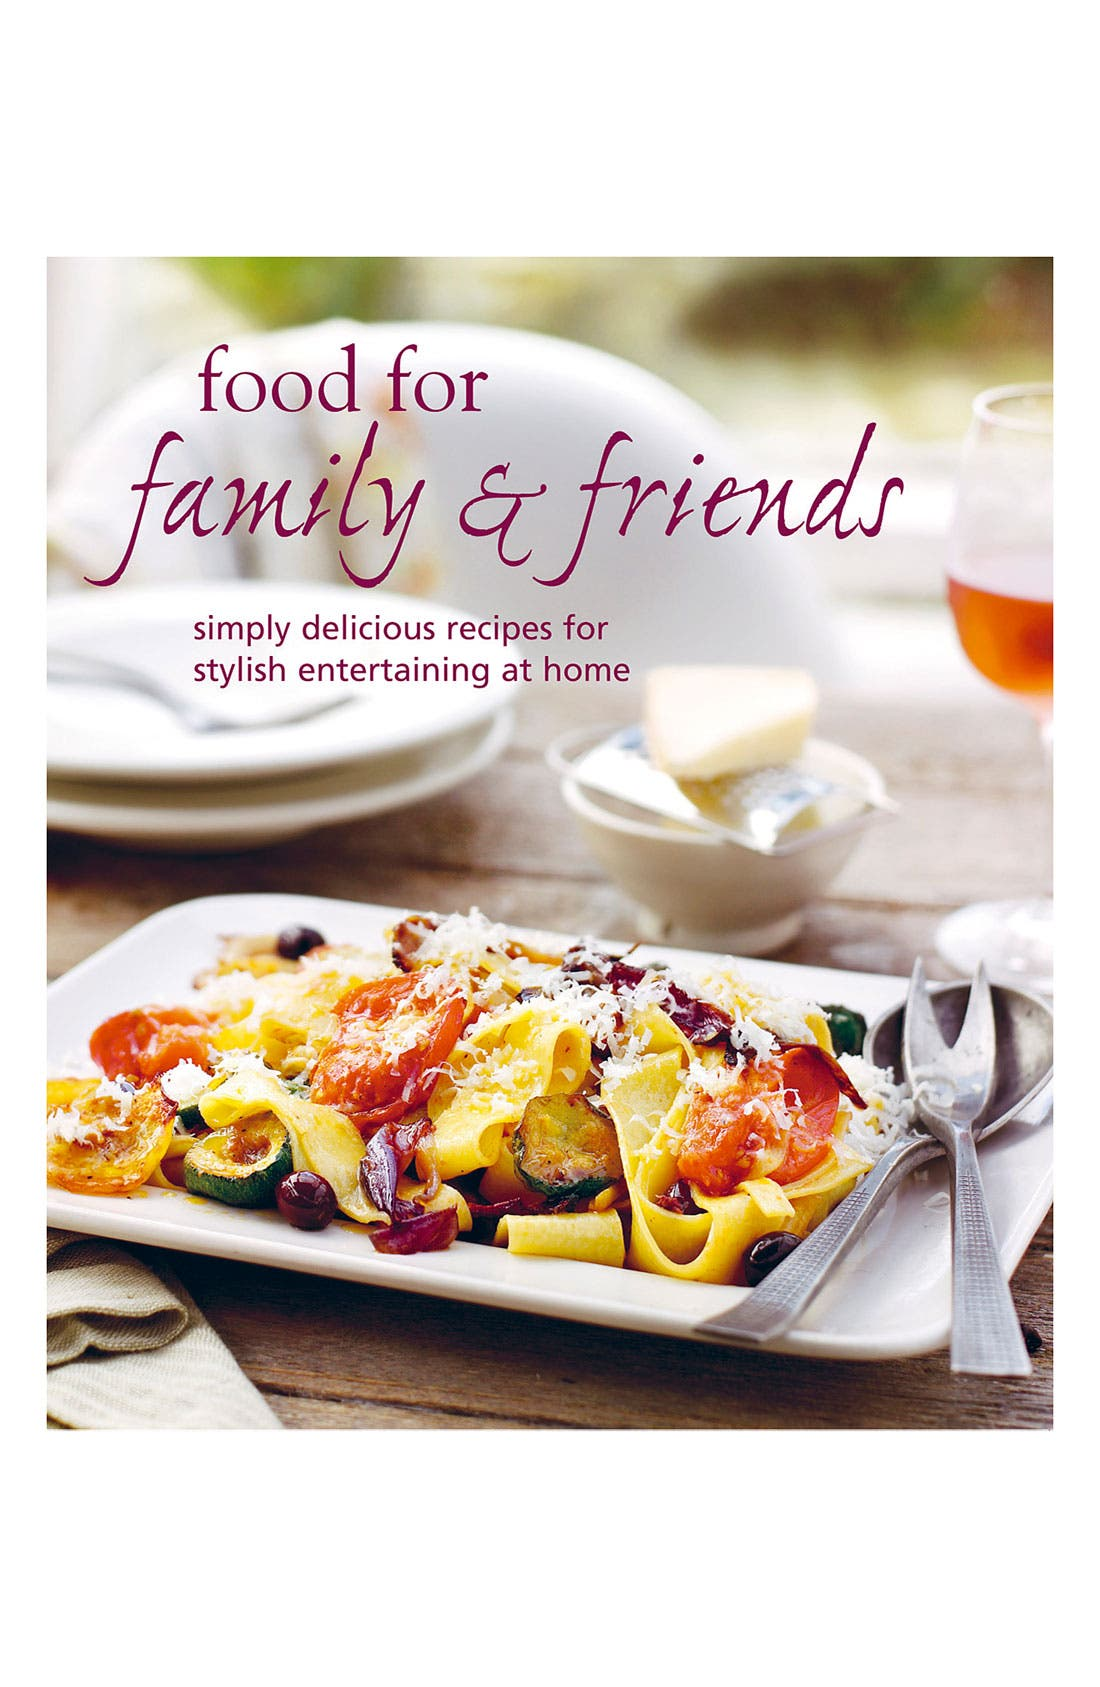 Alternate Image 1 Selected - 'Food For Family & Friends' Cookbook